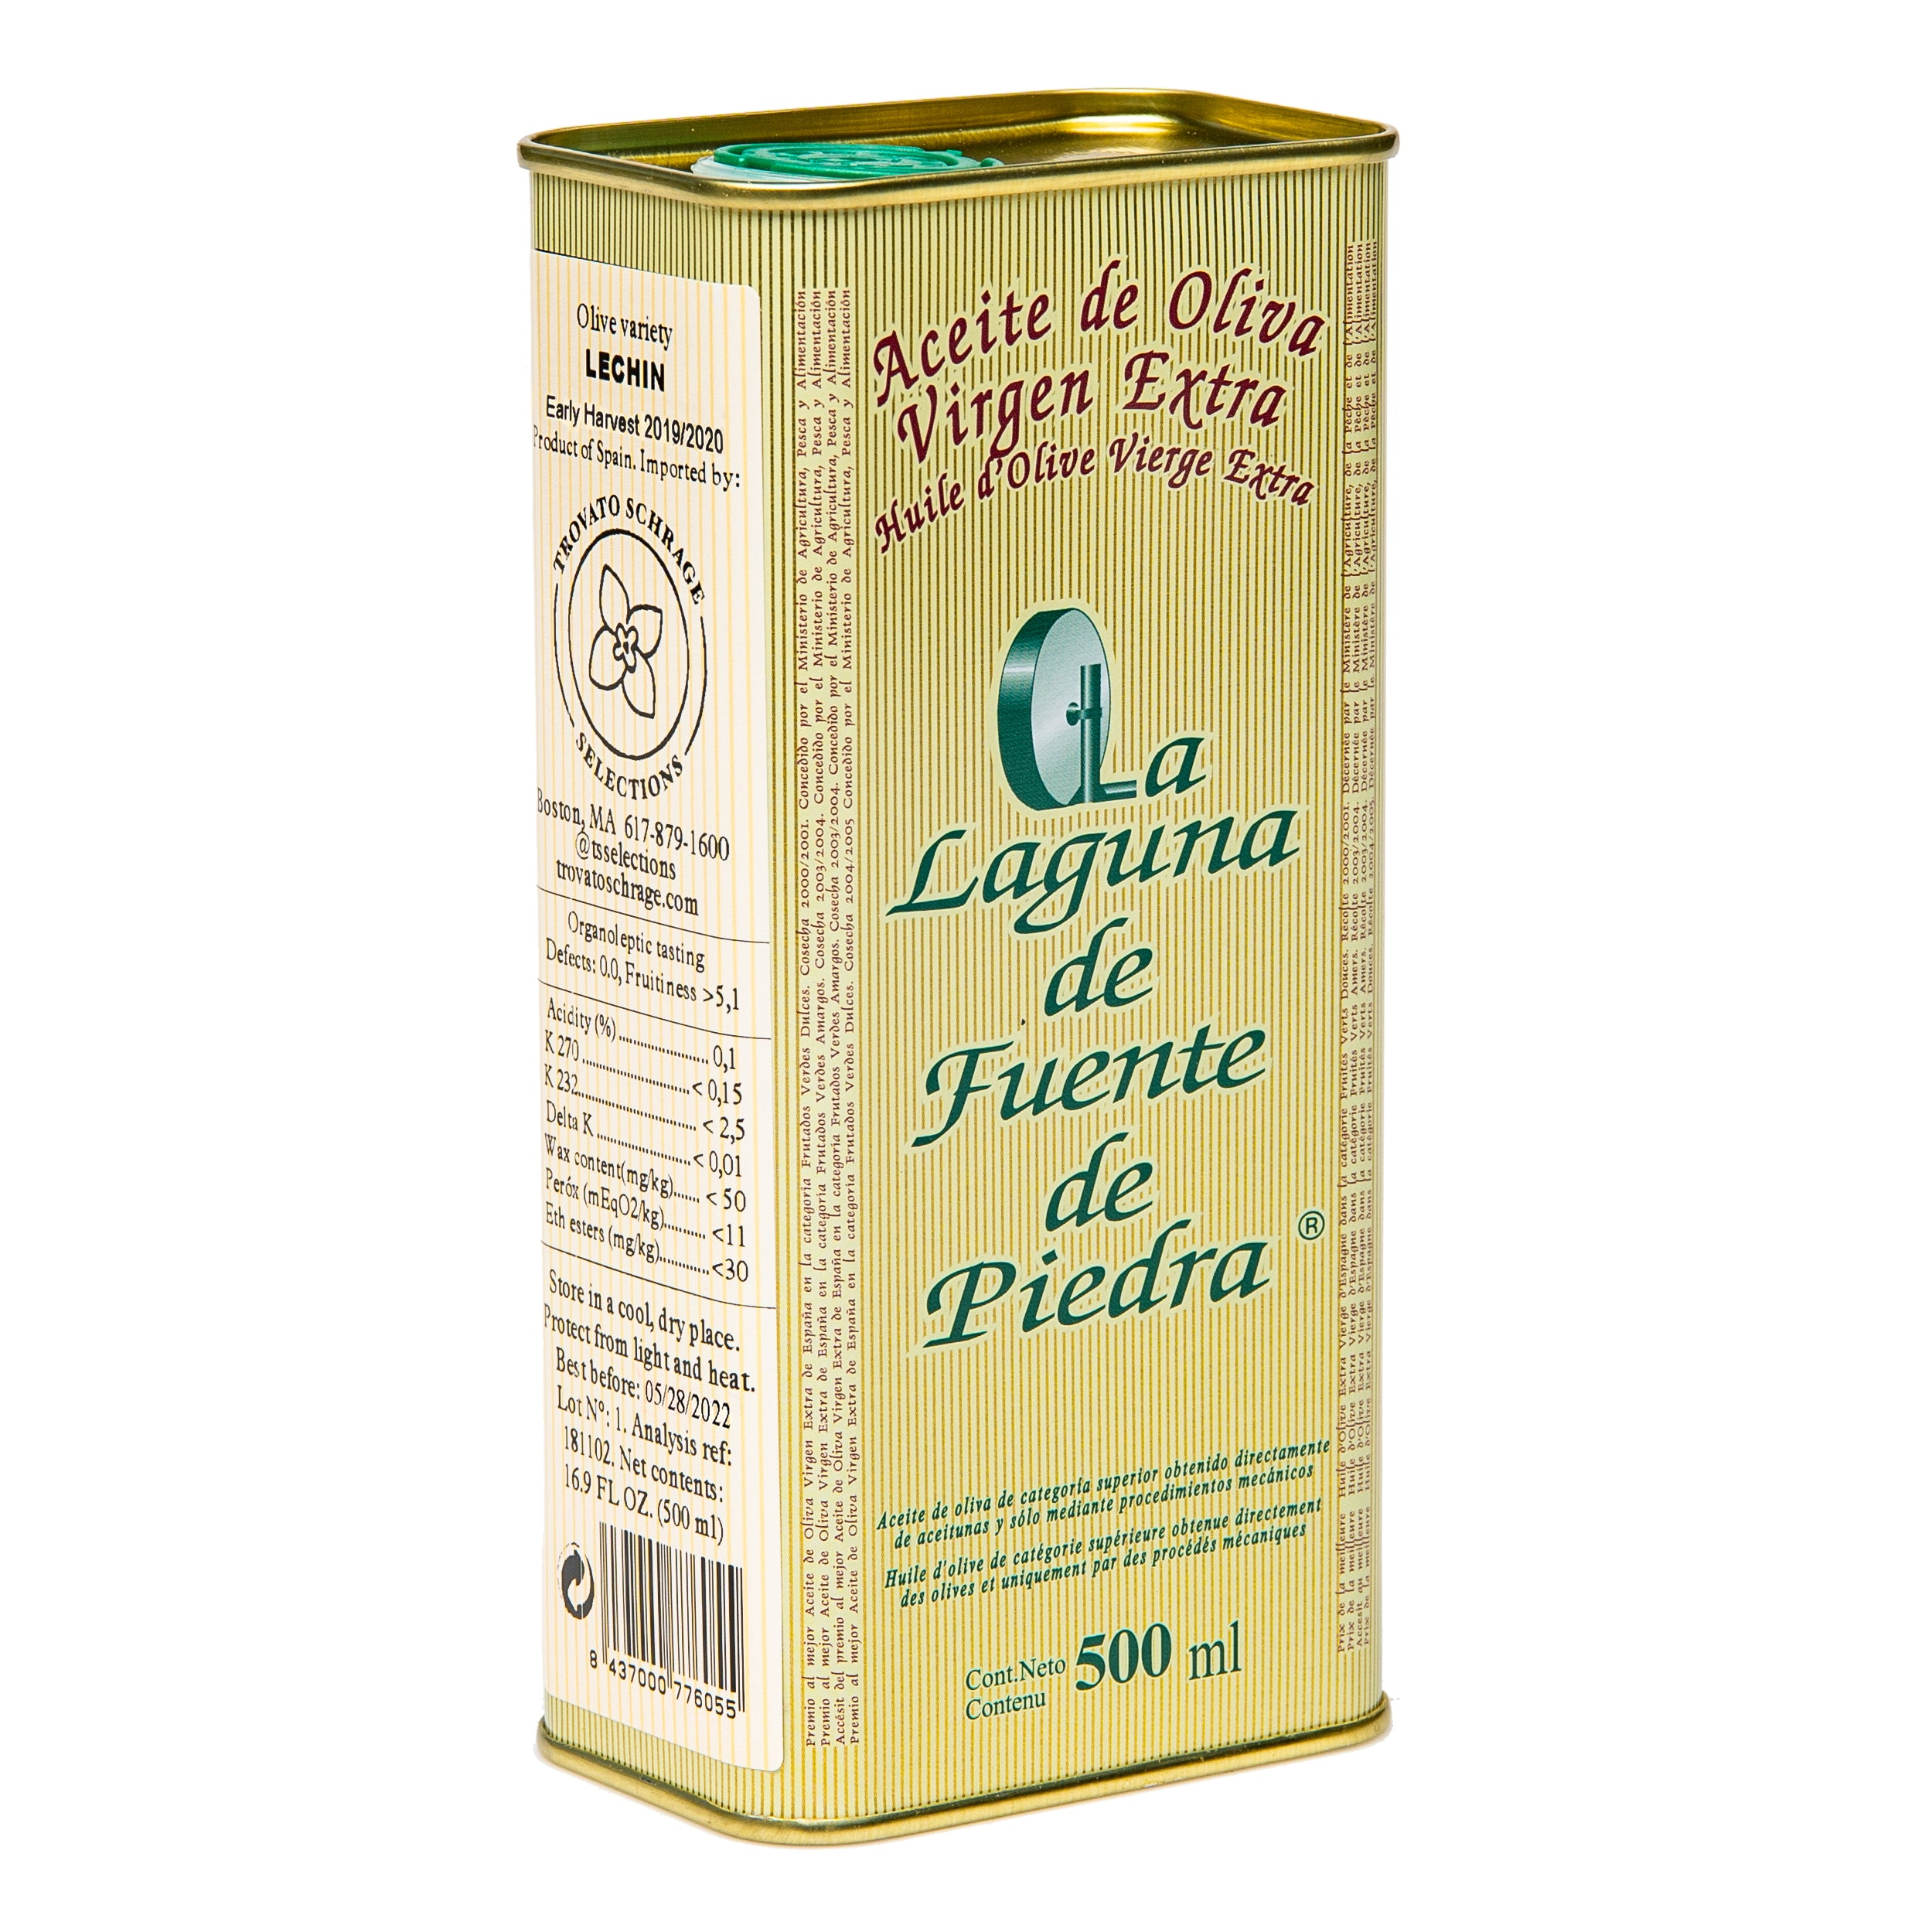 Gordalilla Extra Virgin Olive Oil 500ml